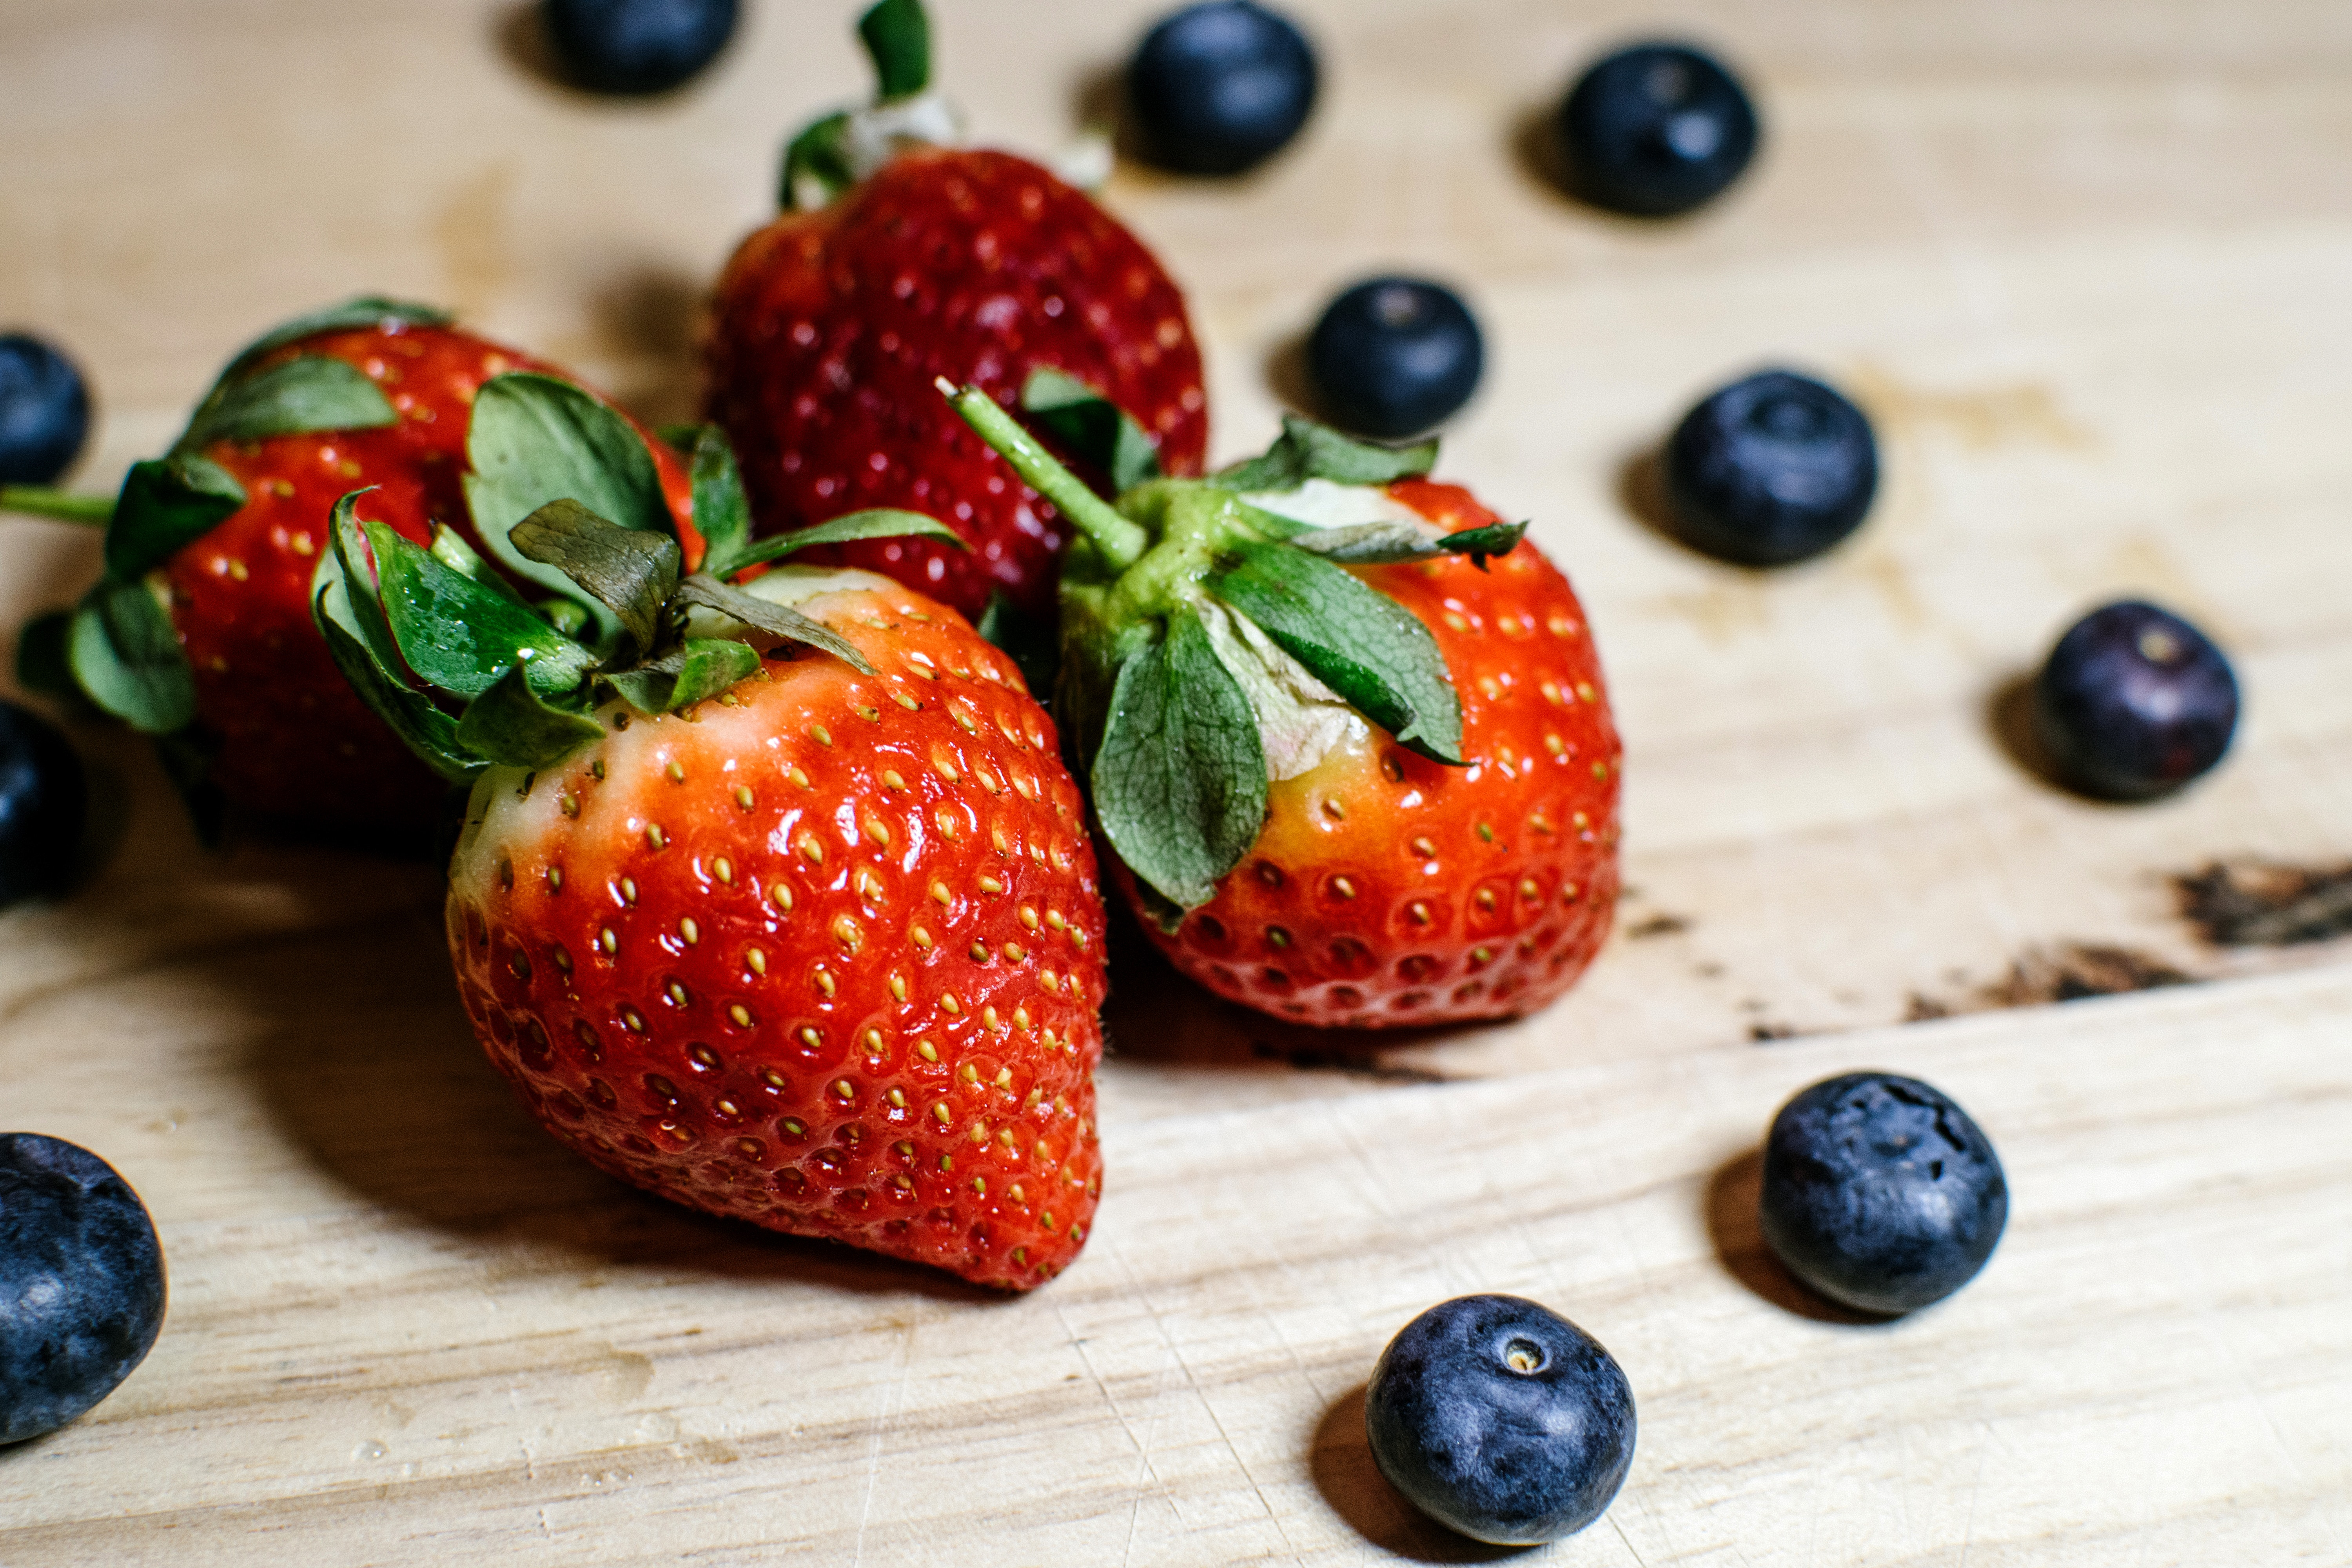 Four Strawberries and Blueberries, Berries, Blueberries, Close-up, Delicious, HQ Photo